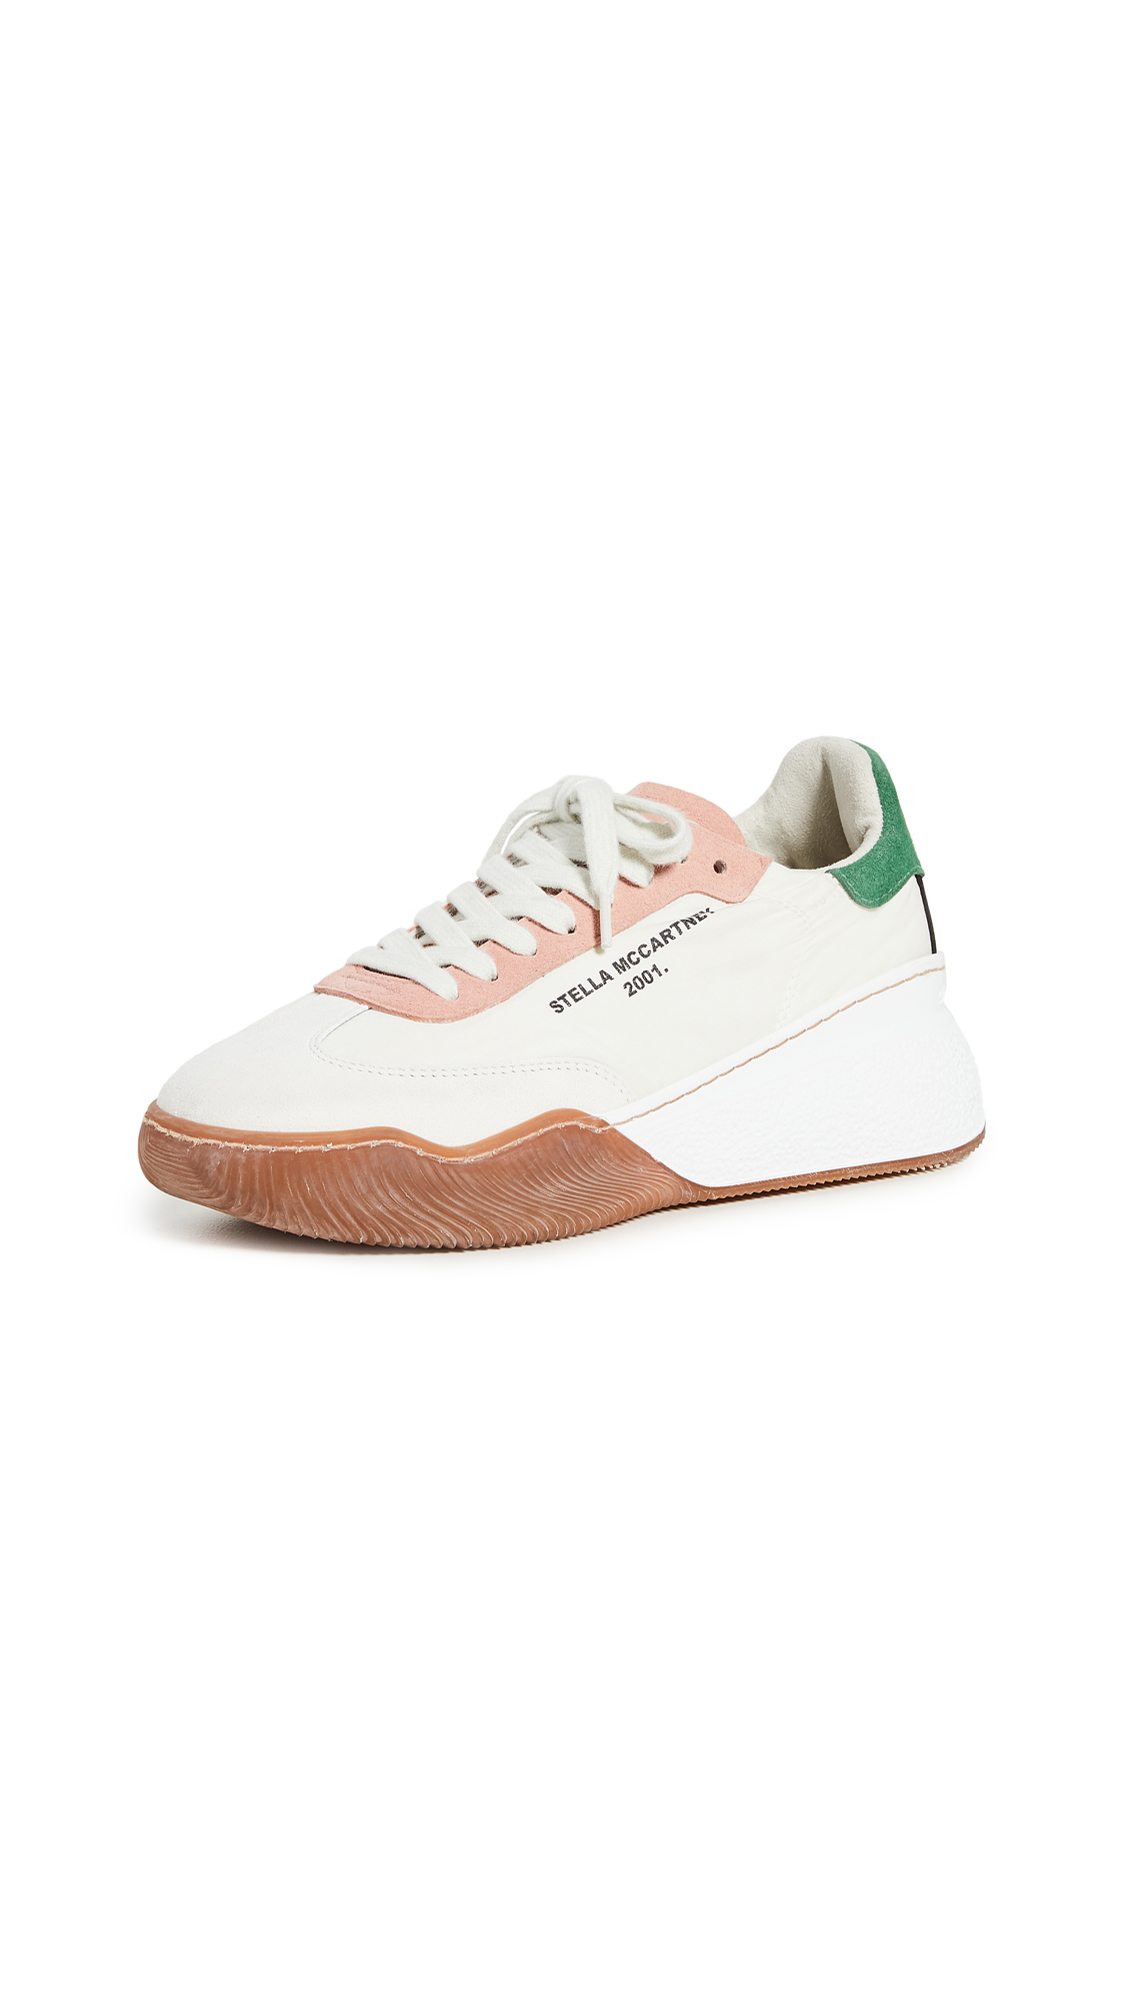 Buy Stella McCartney Loop Lace Up Sneakers online, shop Stella McCartney